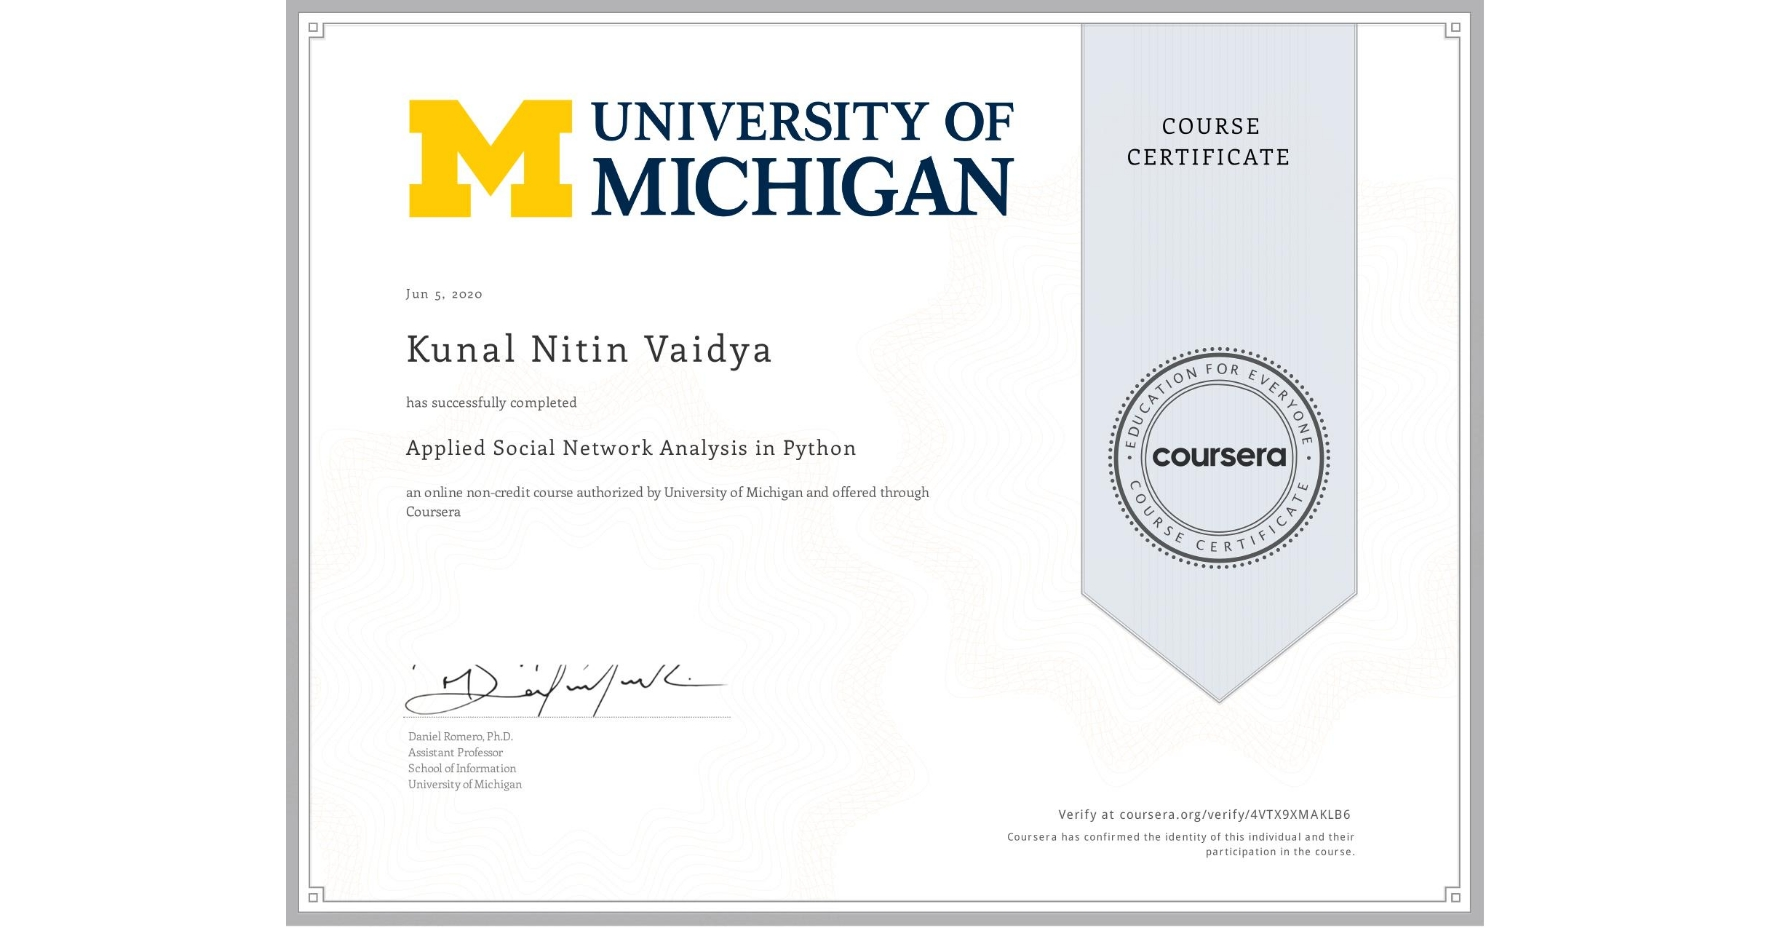 View certificate for Kunal Nitin Vaidya, Applied Social Network Analysis in Python, an online non-credit course authorized by University of Michigan and offered through Coursera